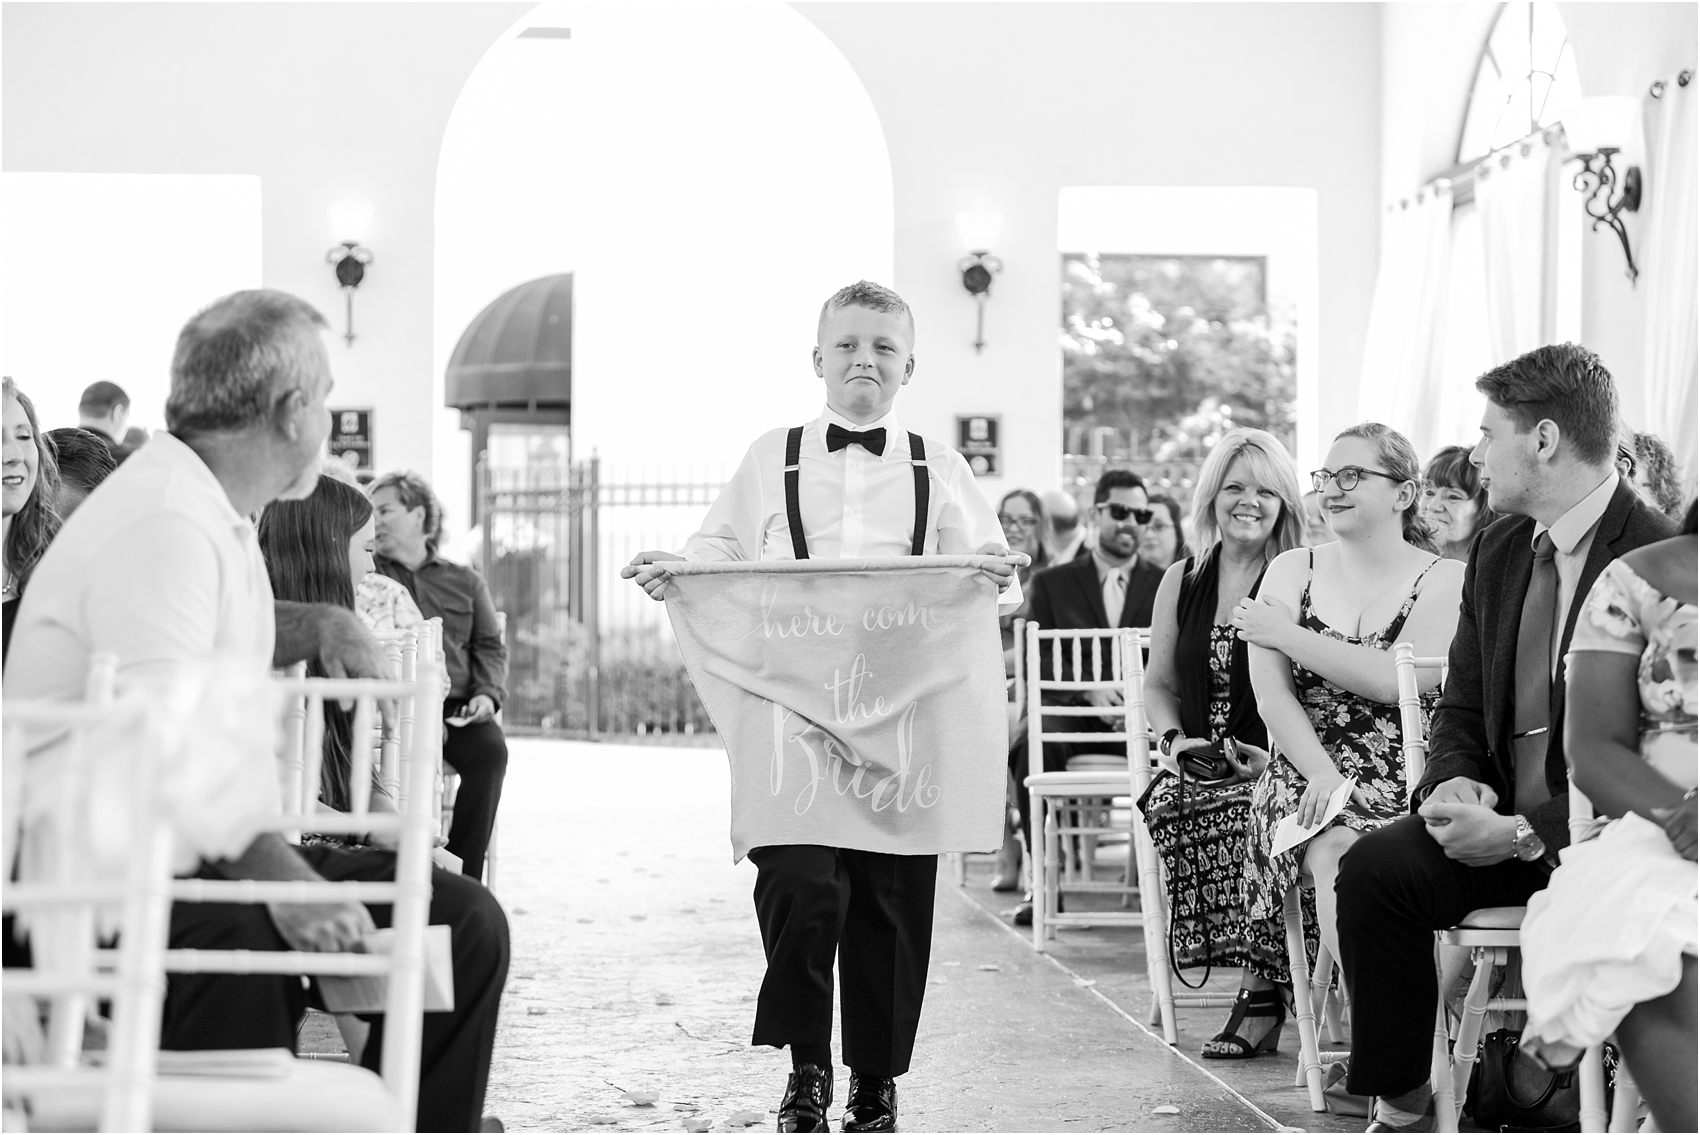 lord-of-the-rings-inspired-wedding-photos-at-crystal-gardens-in-howell-mi-by-courtney-carolyn-photography_0025.jpg